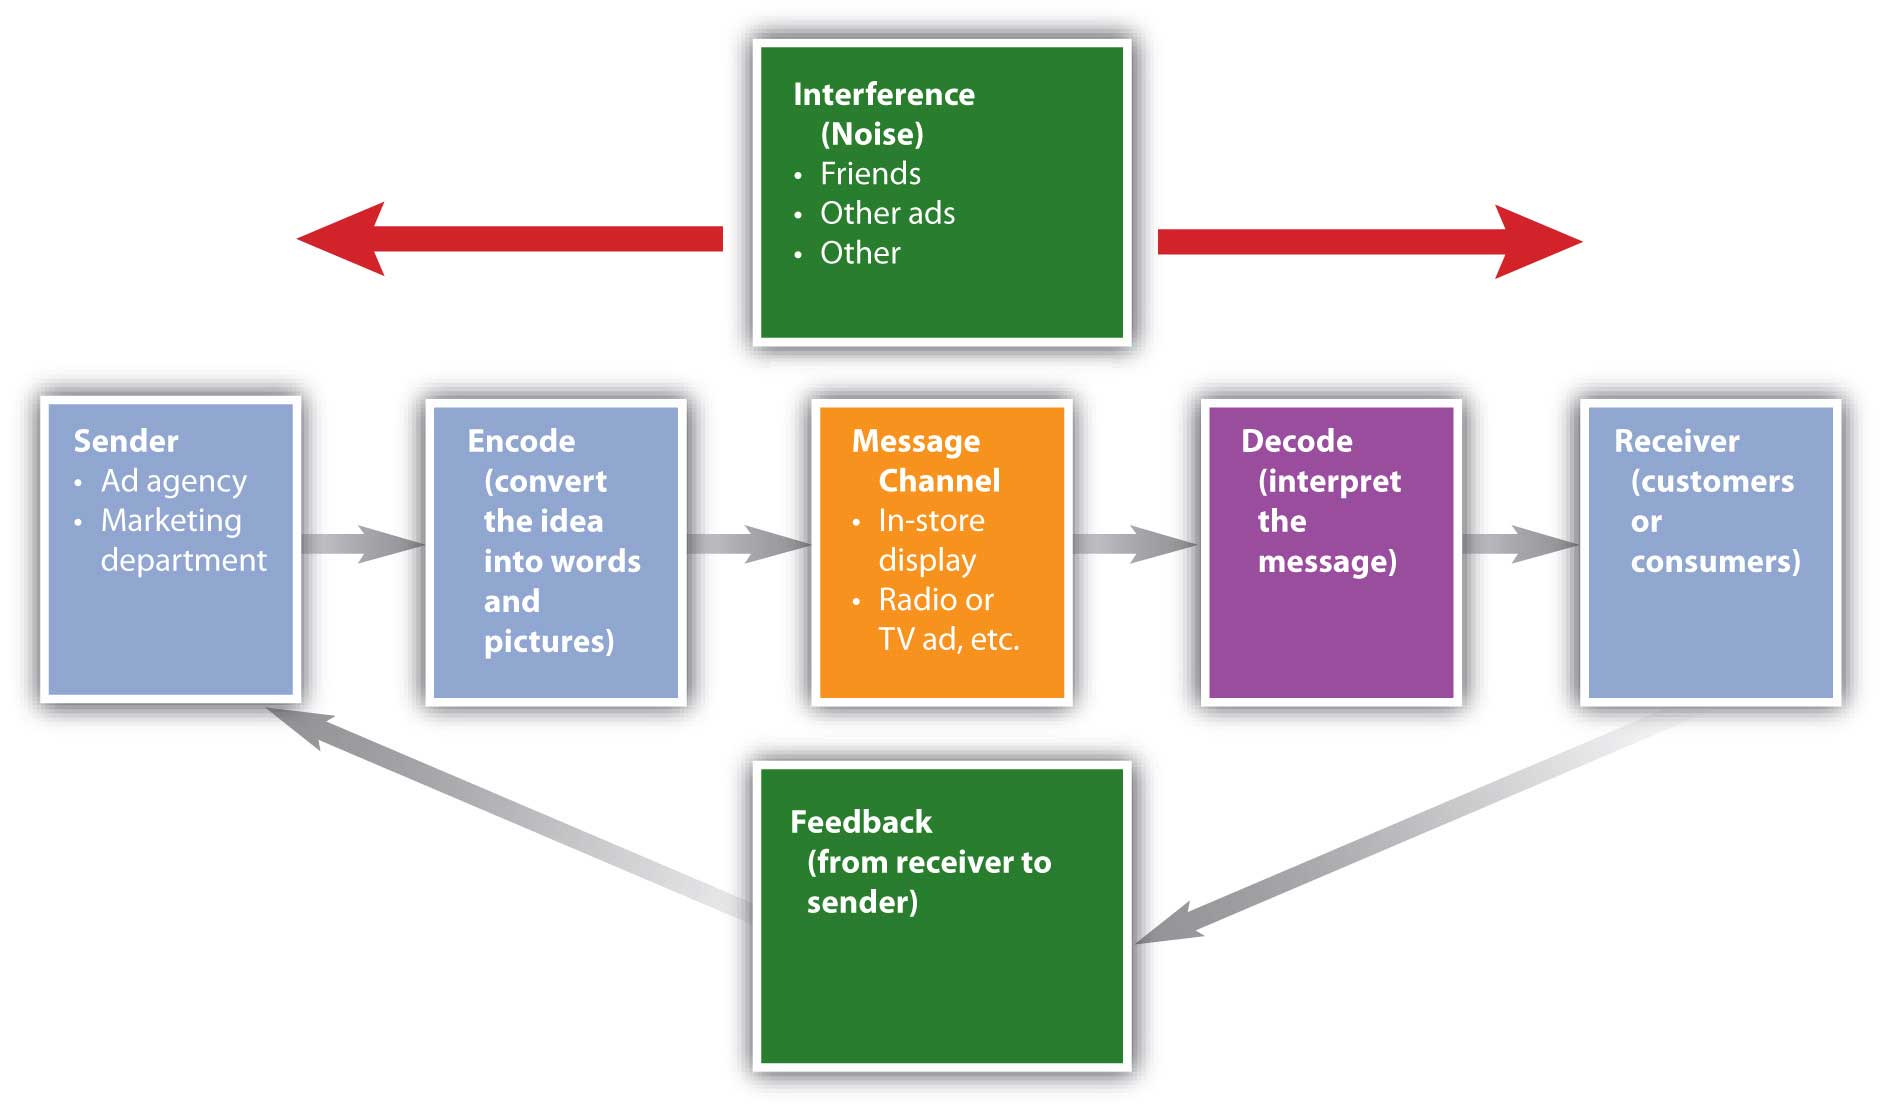 """various elements of the marketing process Explain the various elements of the marketing process: marketing is defined as """"the activity, set of institutions, and processes for creating, communicating, delivering, and exchanging offerings that have value for customers, clients, partners, and society at large understand markets and ."""